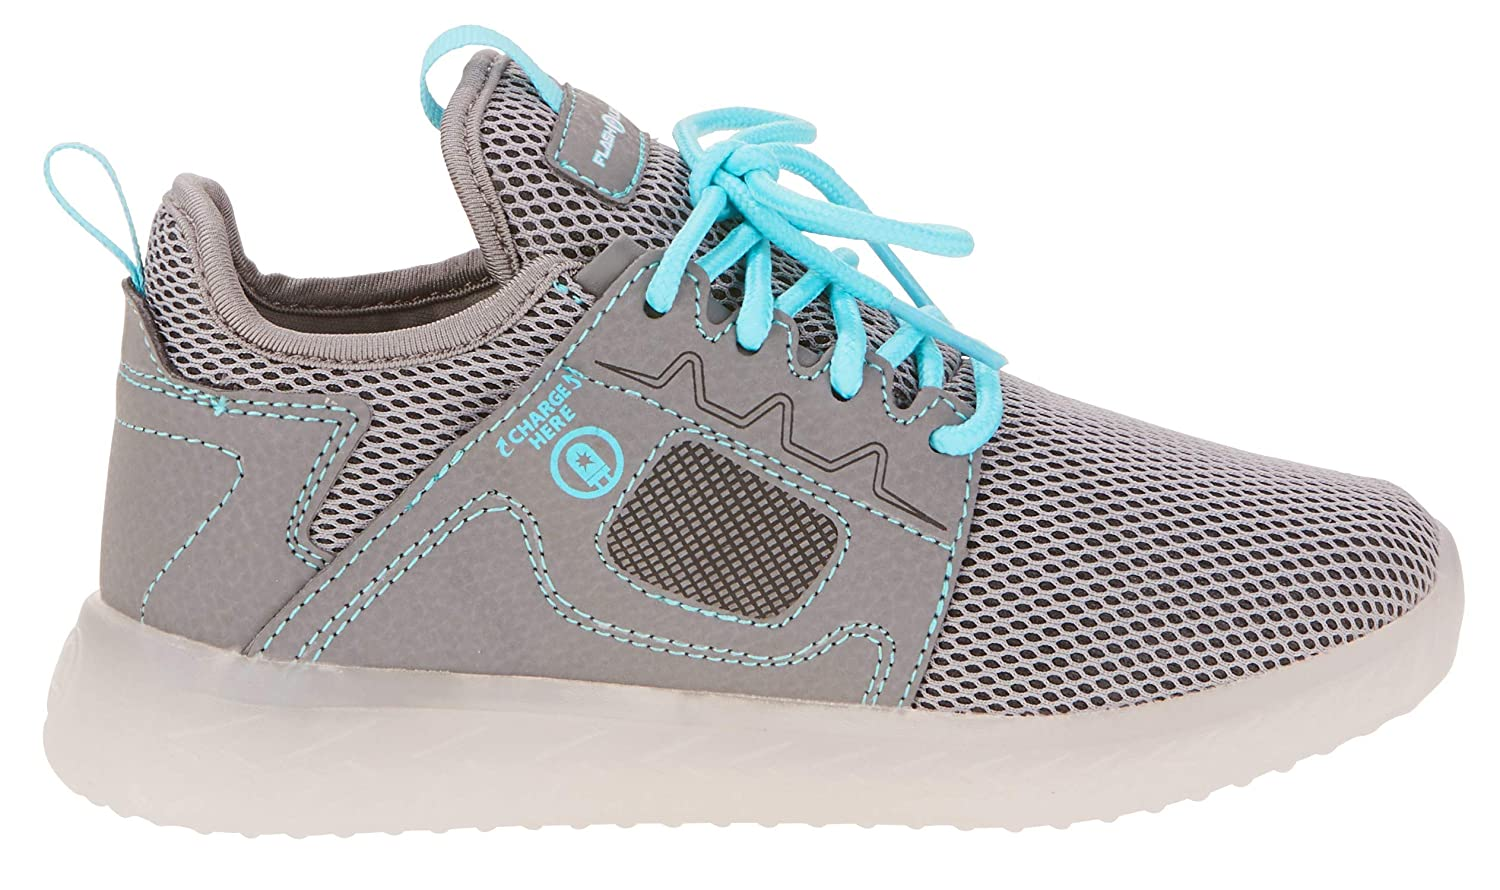 Flashlights Girls Multi Color Light-Up Lightweight Athletic Sneakers Grey Teal, Size 7